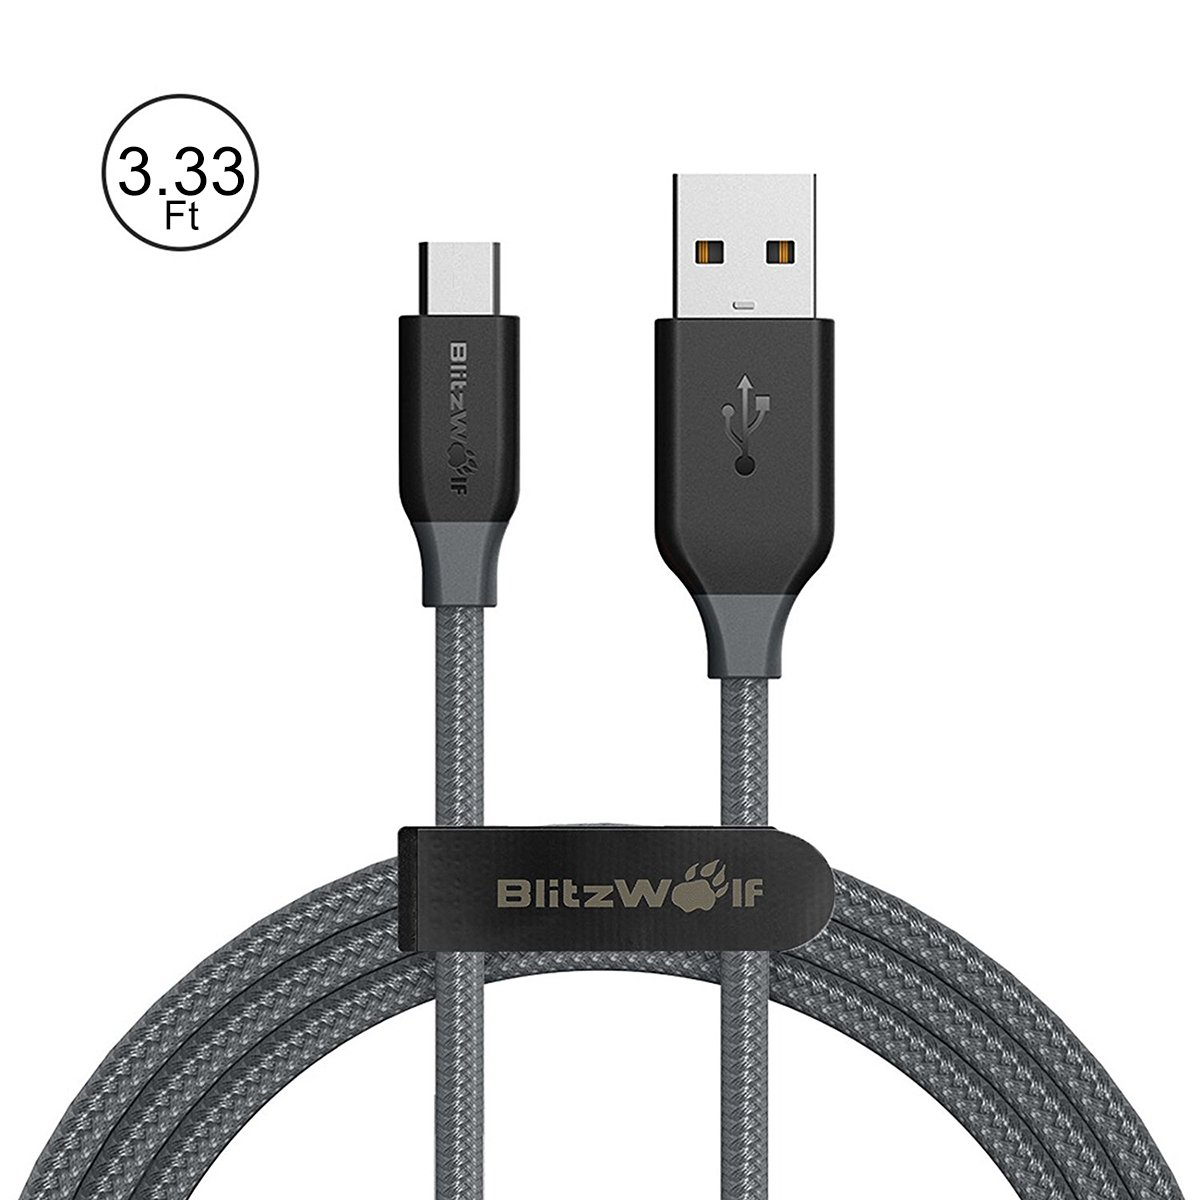 Micro USB Cable Braided, BlitzWolf 1m Nylon Android Charger with magic tape strap Fast Charging Tangle Free for Android, Samsung Galaxy S7 HTC Xperia Sony Nokia Kindle Tablets Power Bank(Black&Grey)